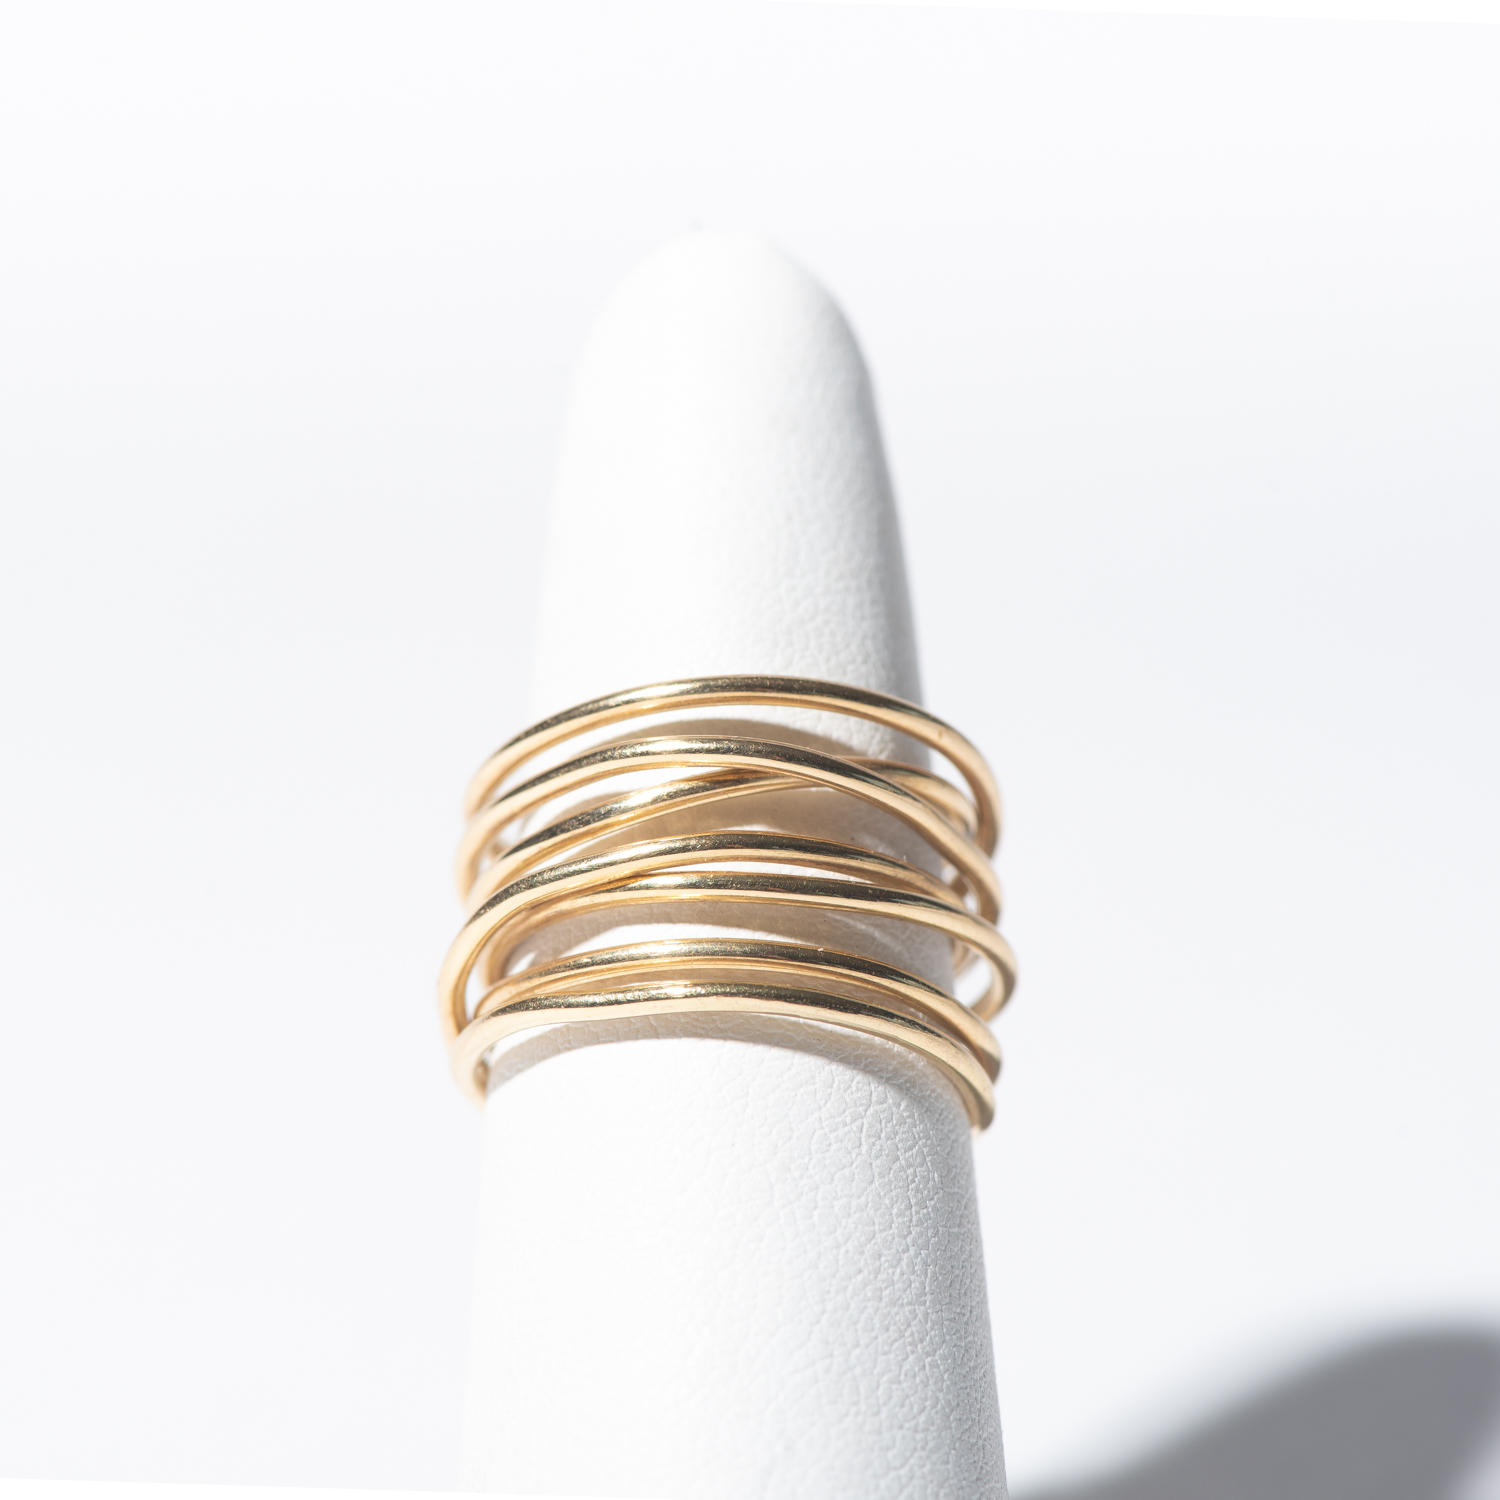 Design Five. - 14K Gold Wrap Ring